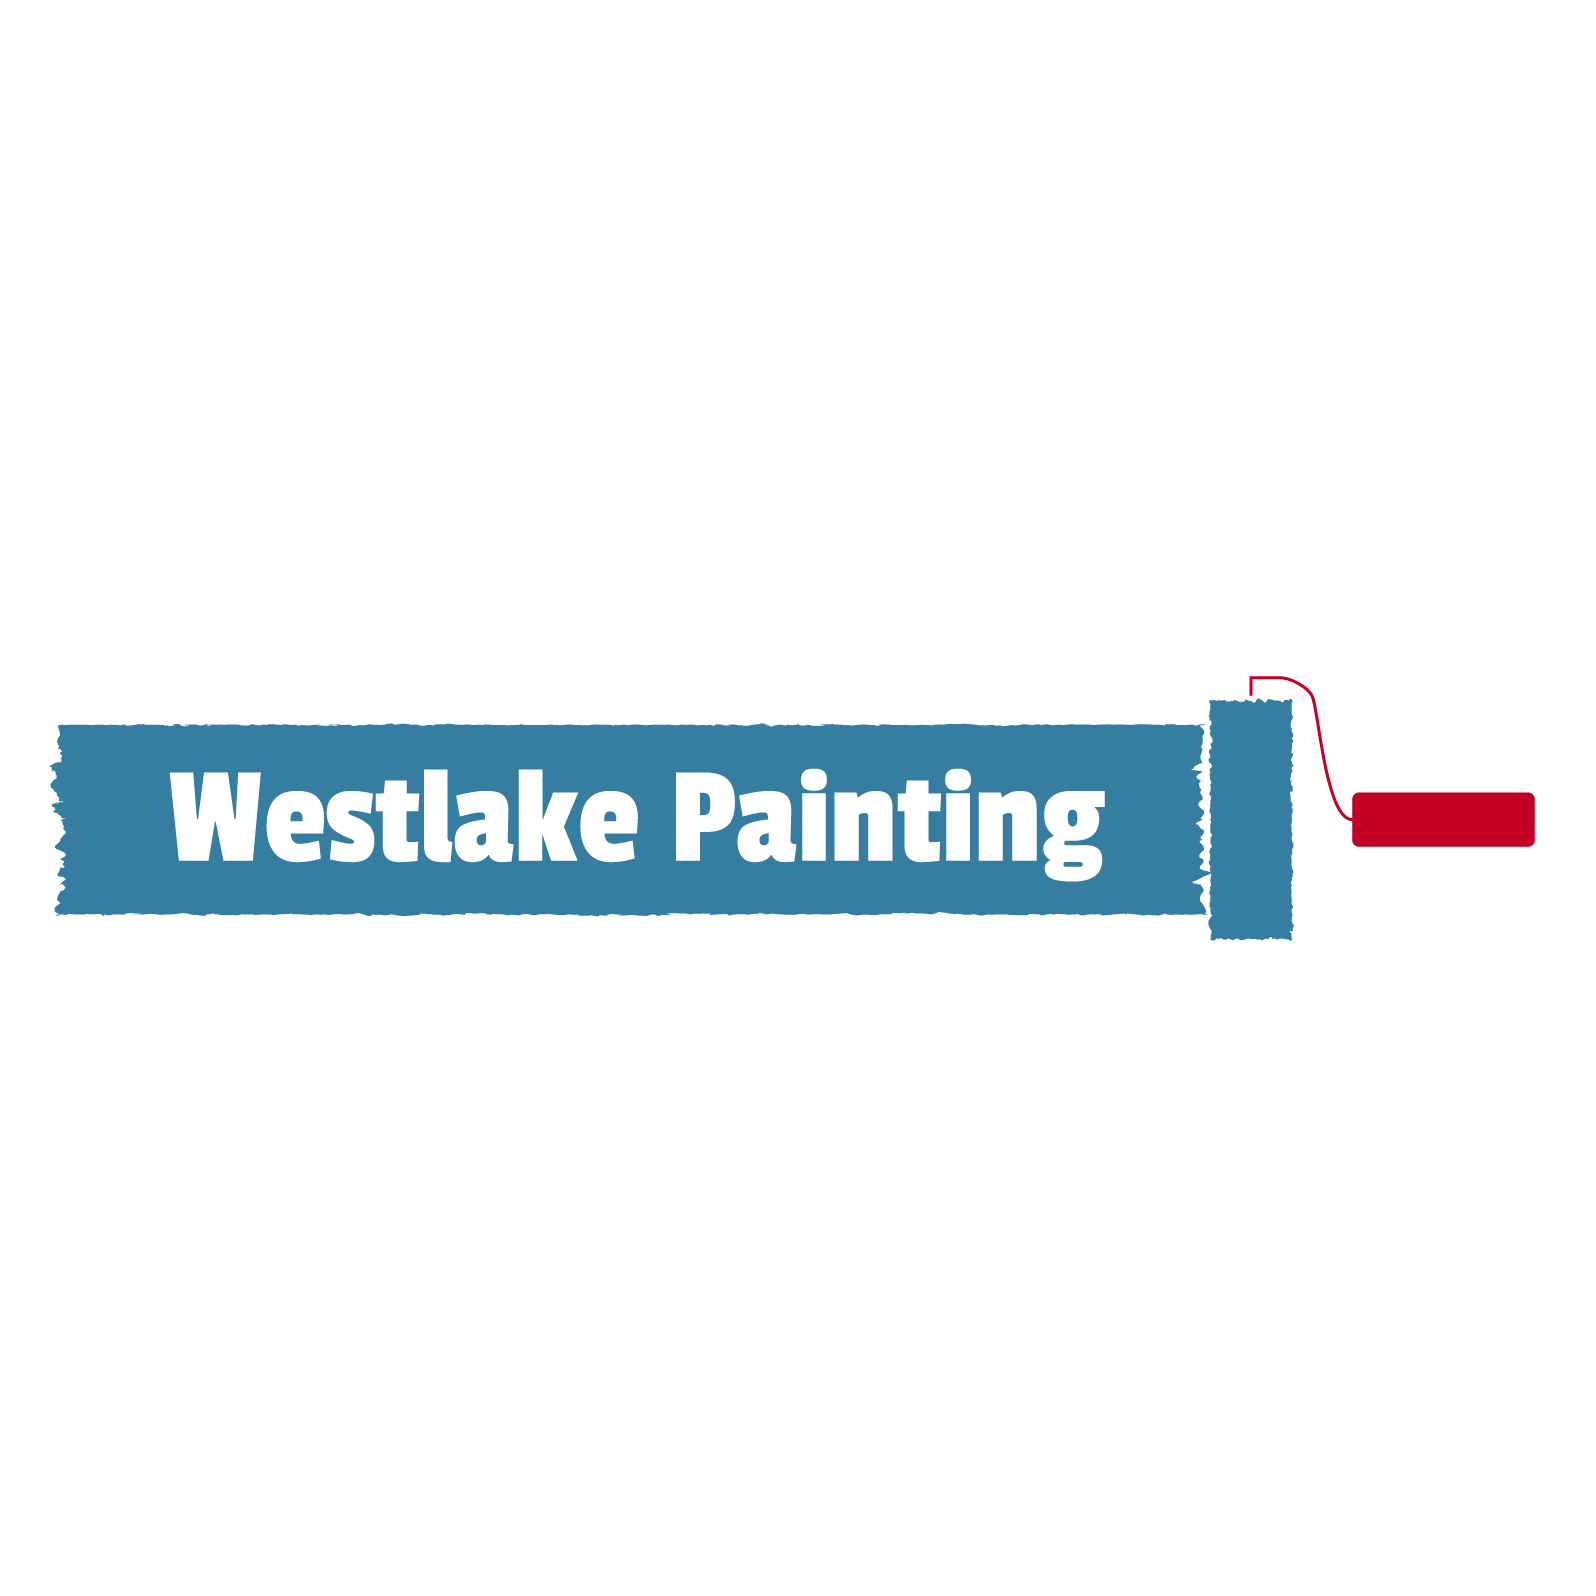 Westlake Painting, Inc. - Bay Village, OH - Painters & Painting Contractors